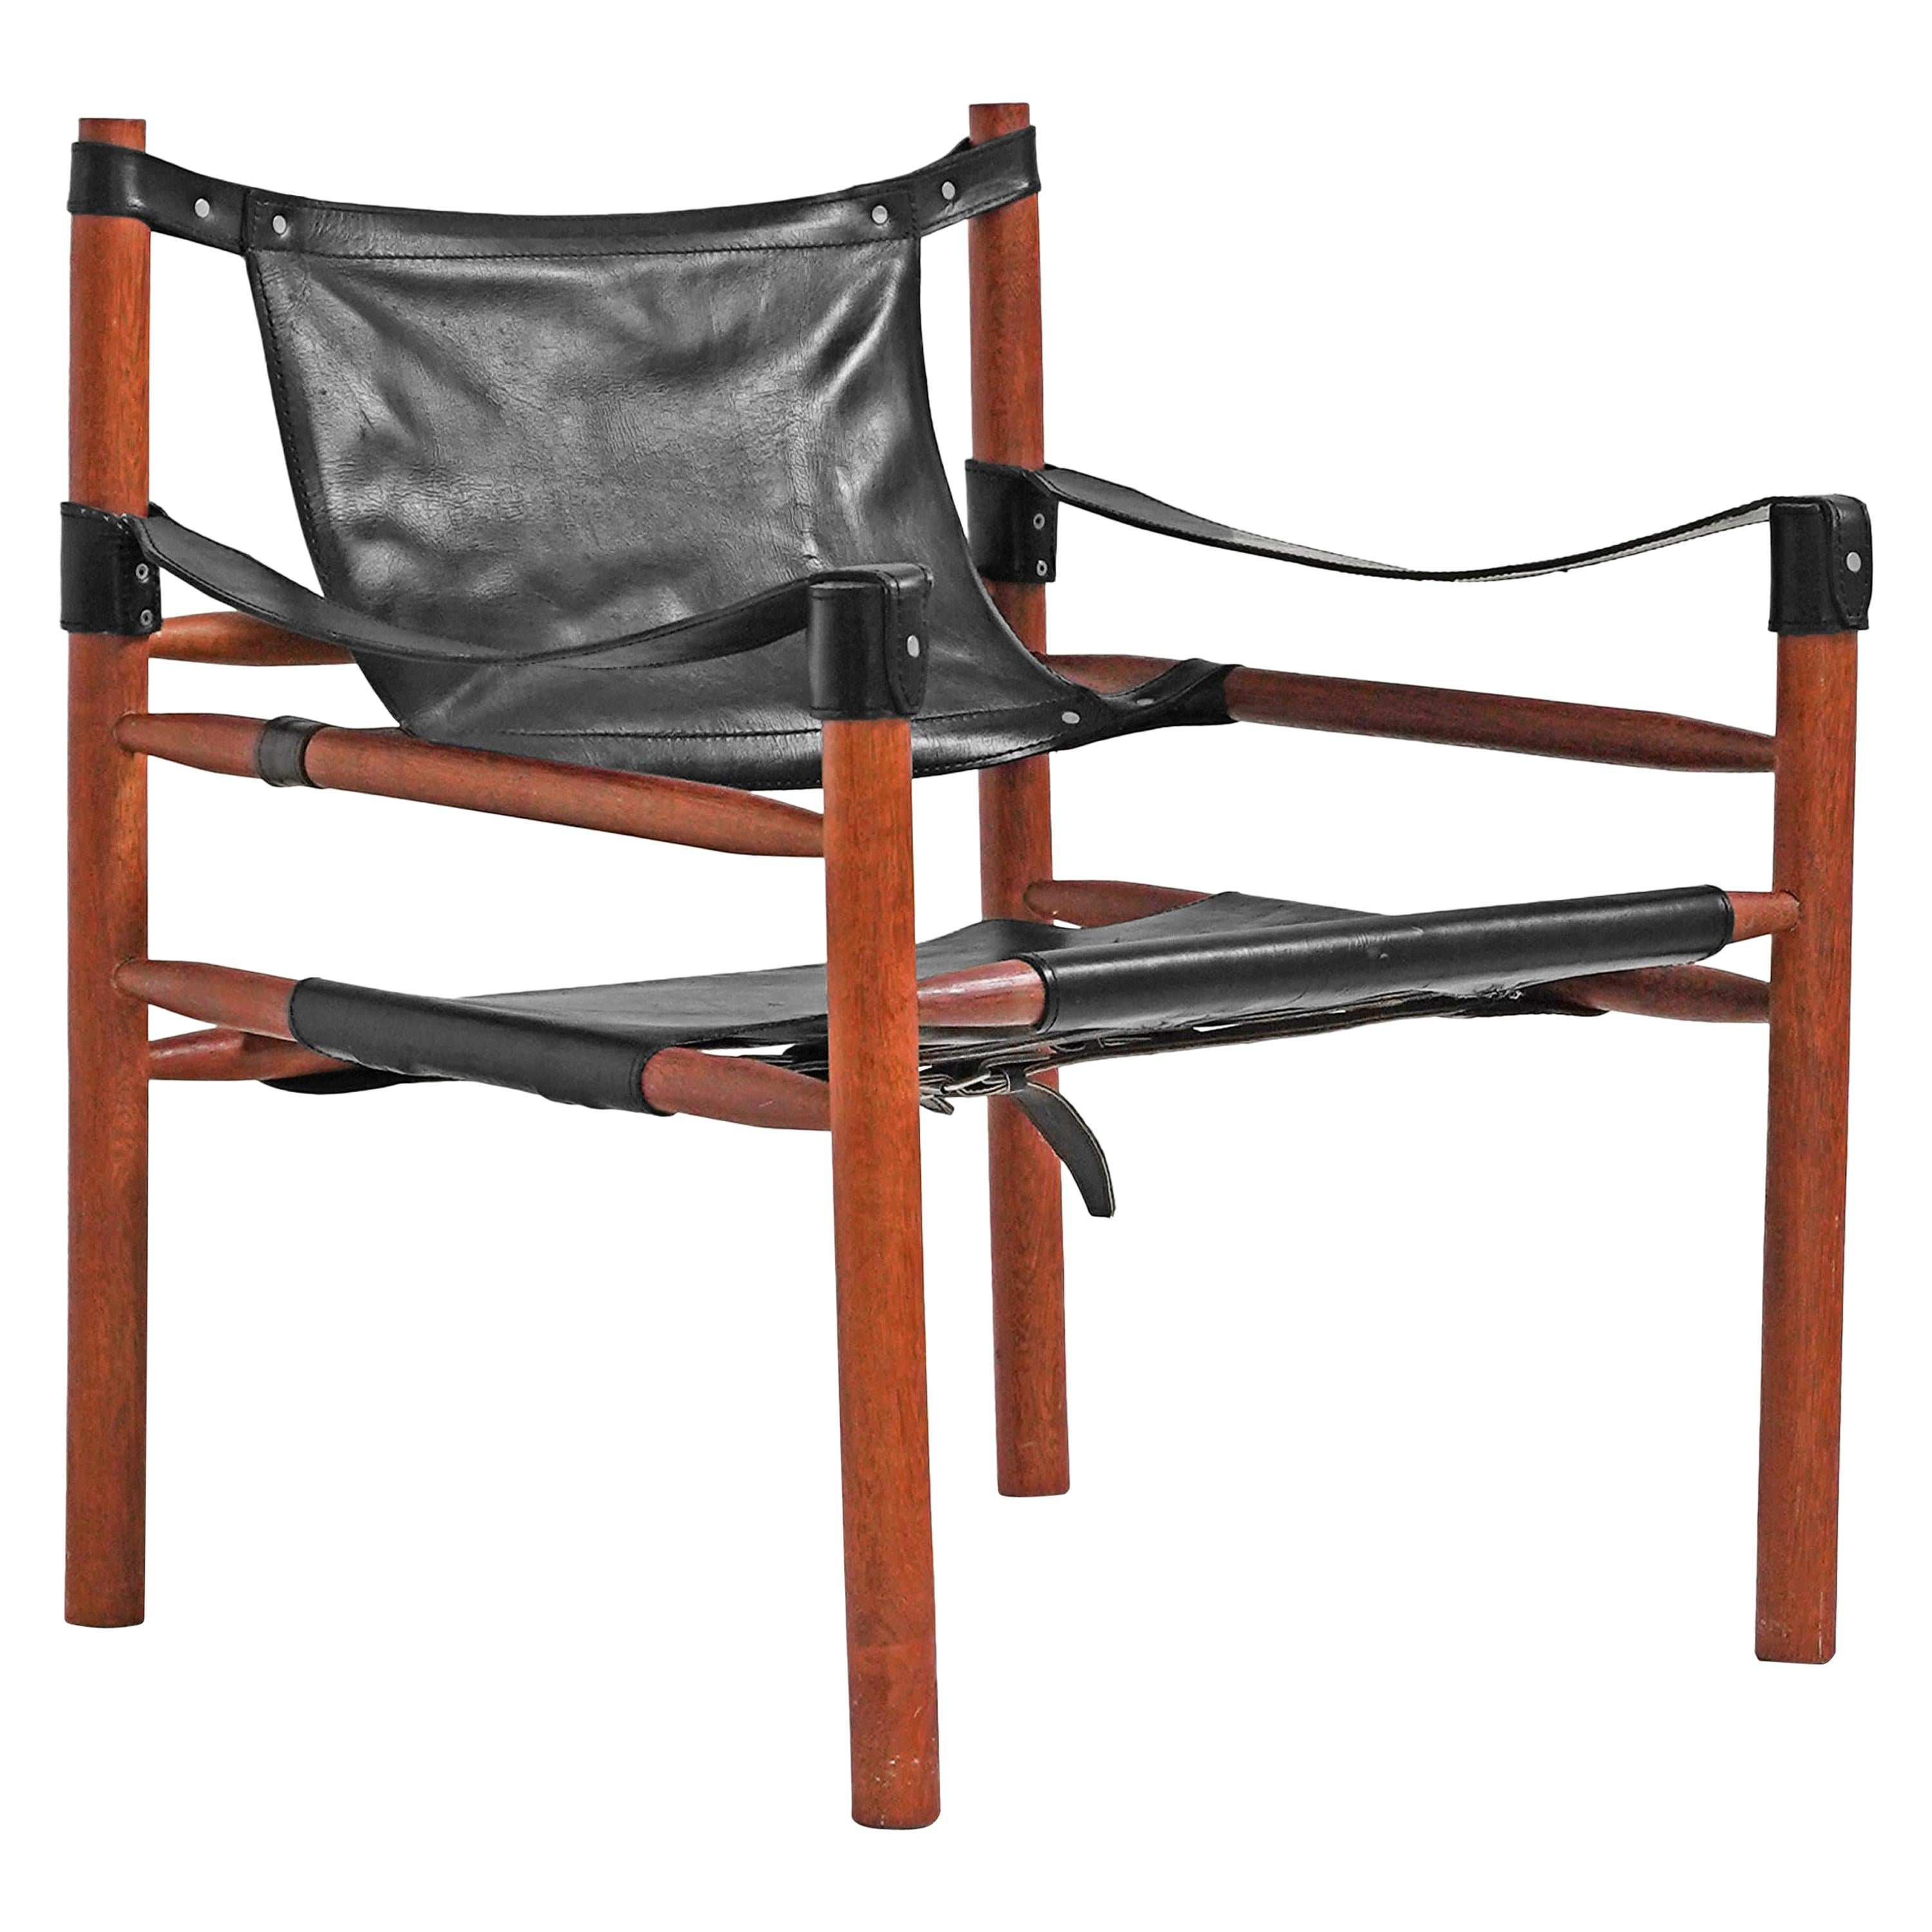 Black Leather Safari Sling Chair in the style of Arne Norell for Norells AB